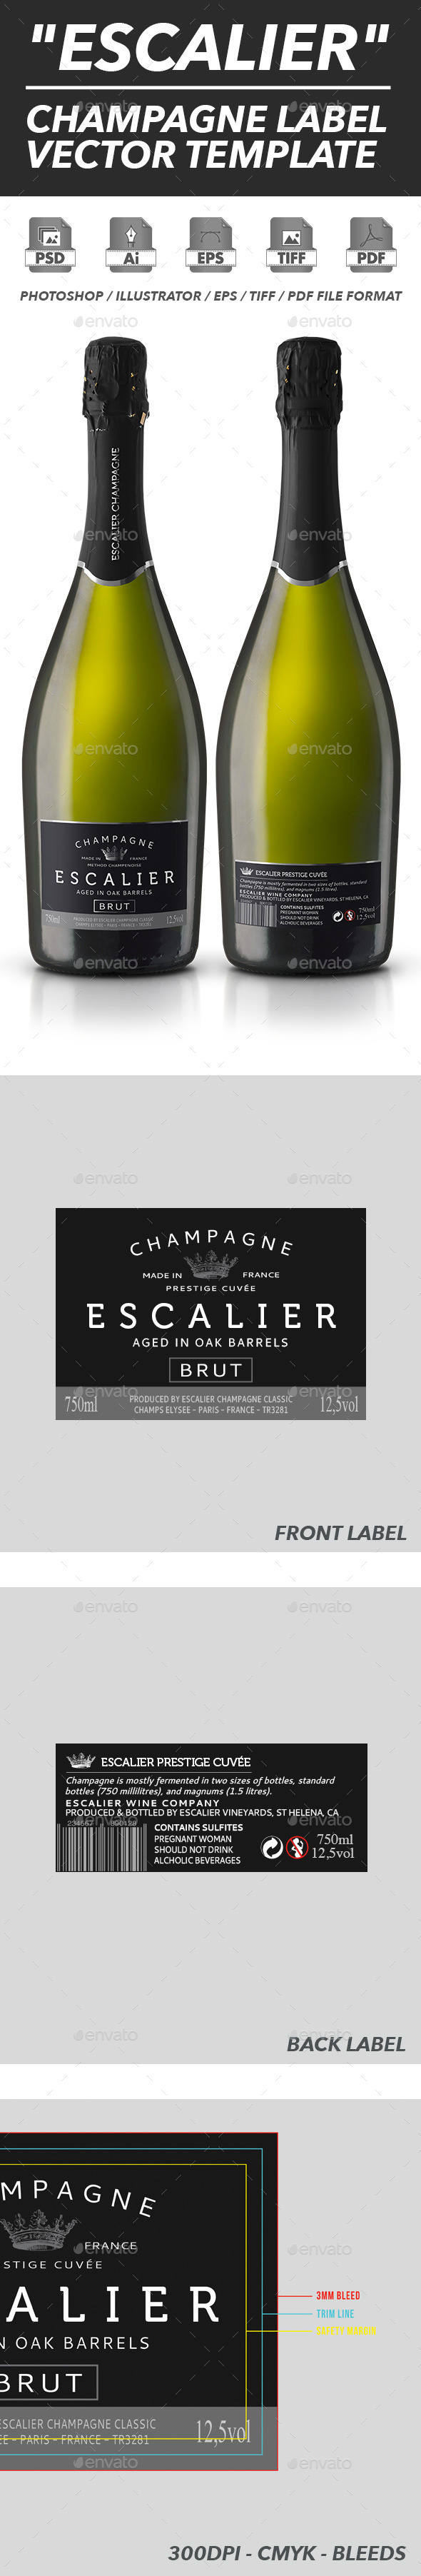 Champagne Label Vector Template By ShinyPixel GraphicRiver - Champagne label template